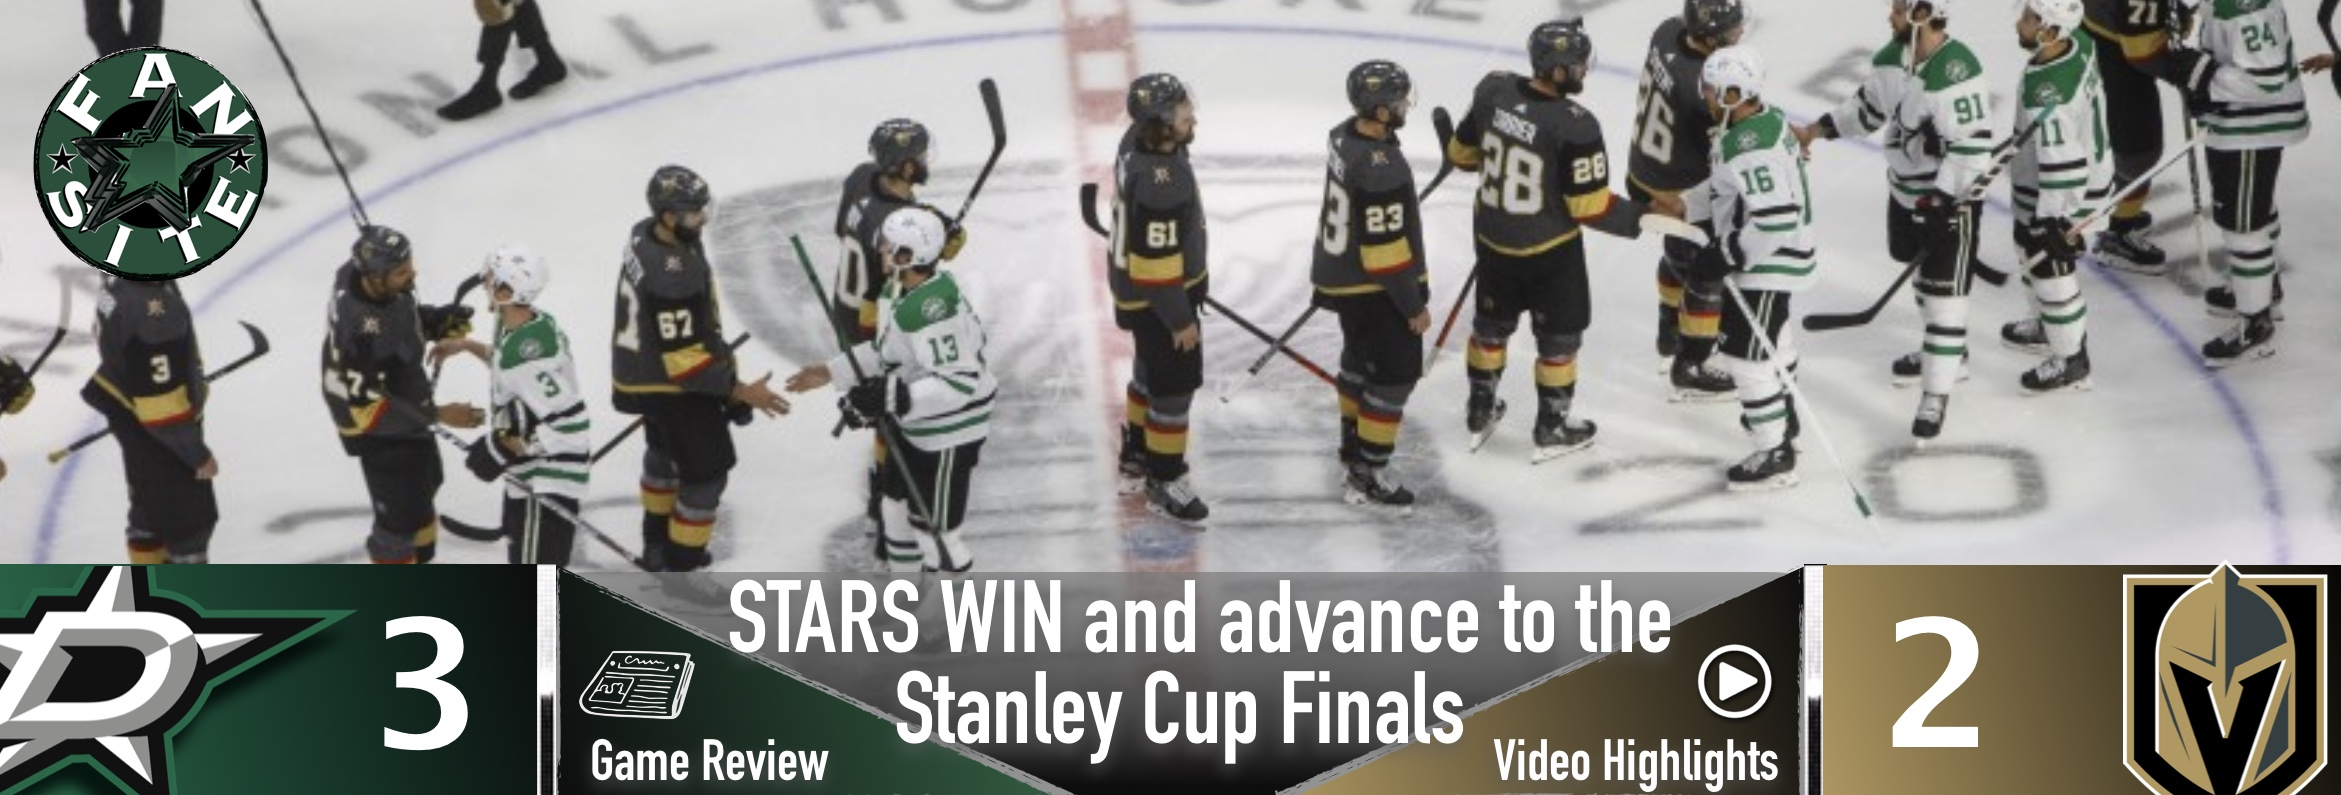 STARS WIN and advance to the Stanley Cup Finals!